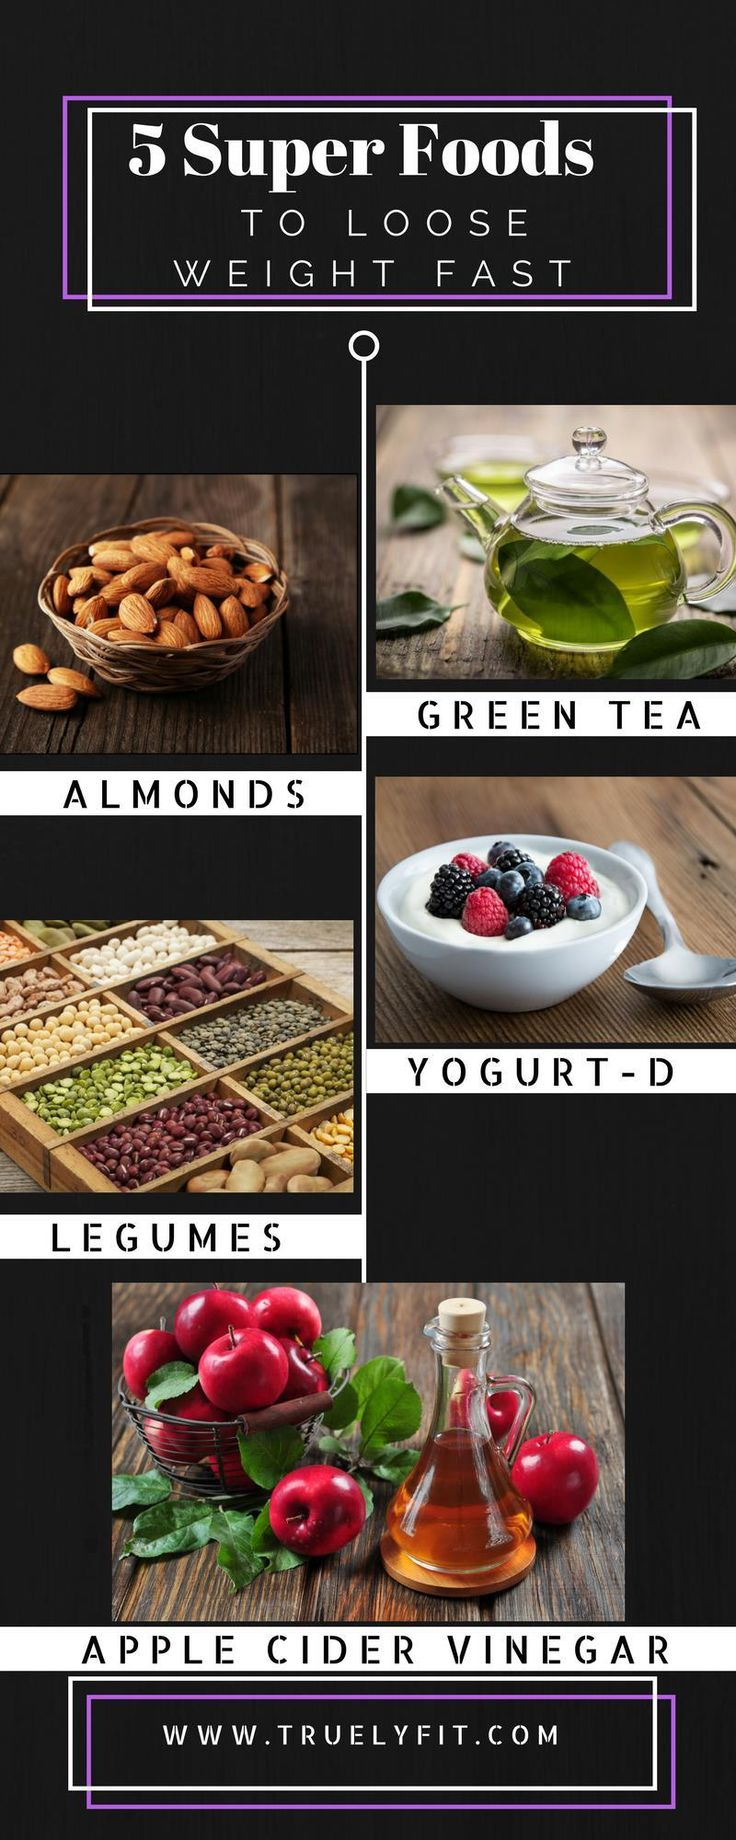 5 Super Foods to Loose Weight fast